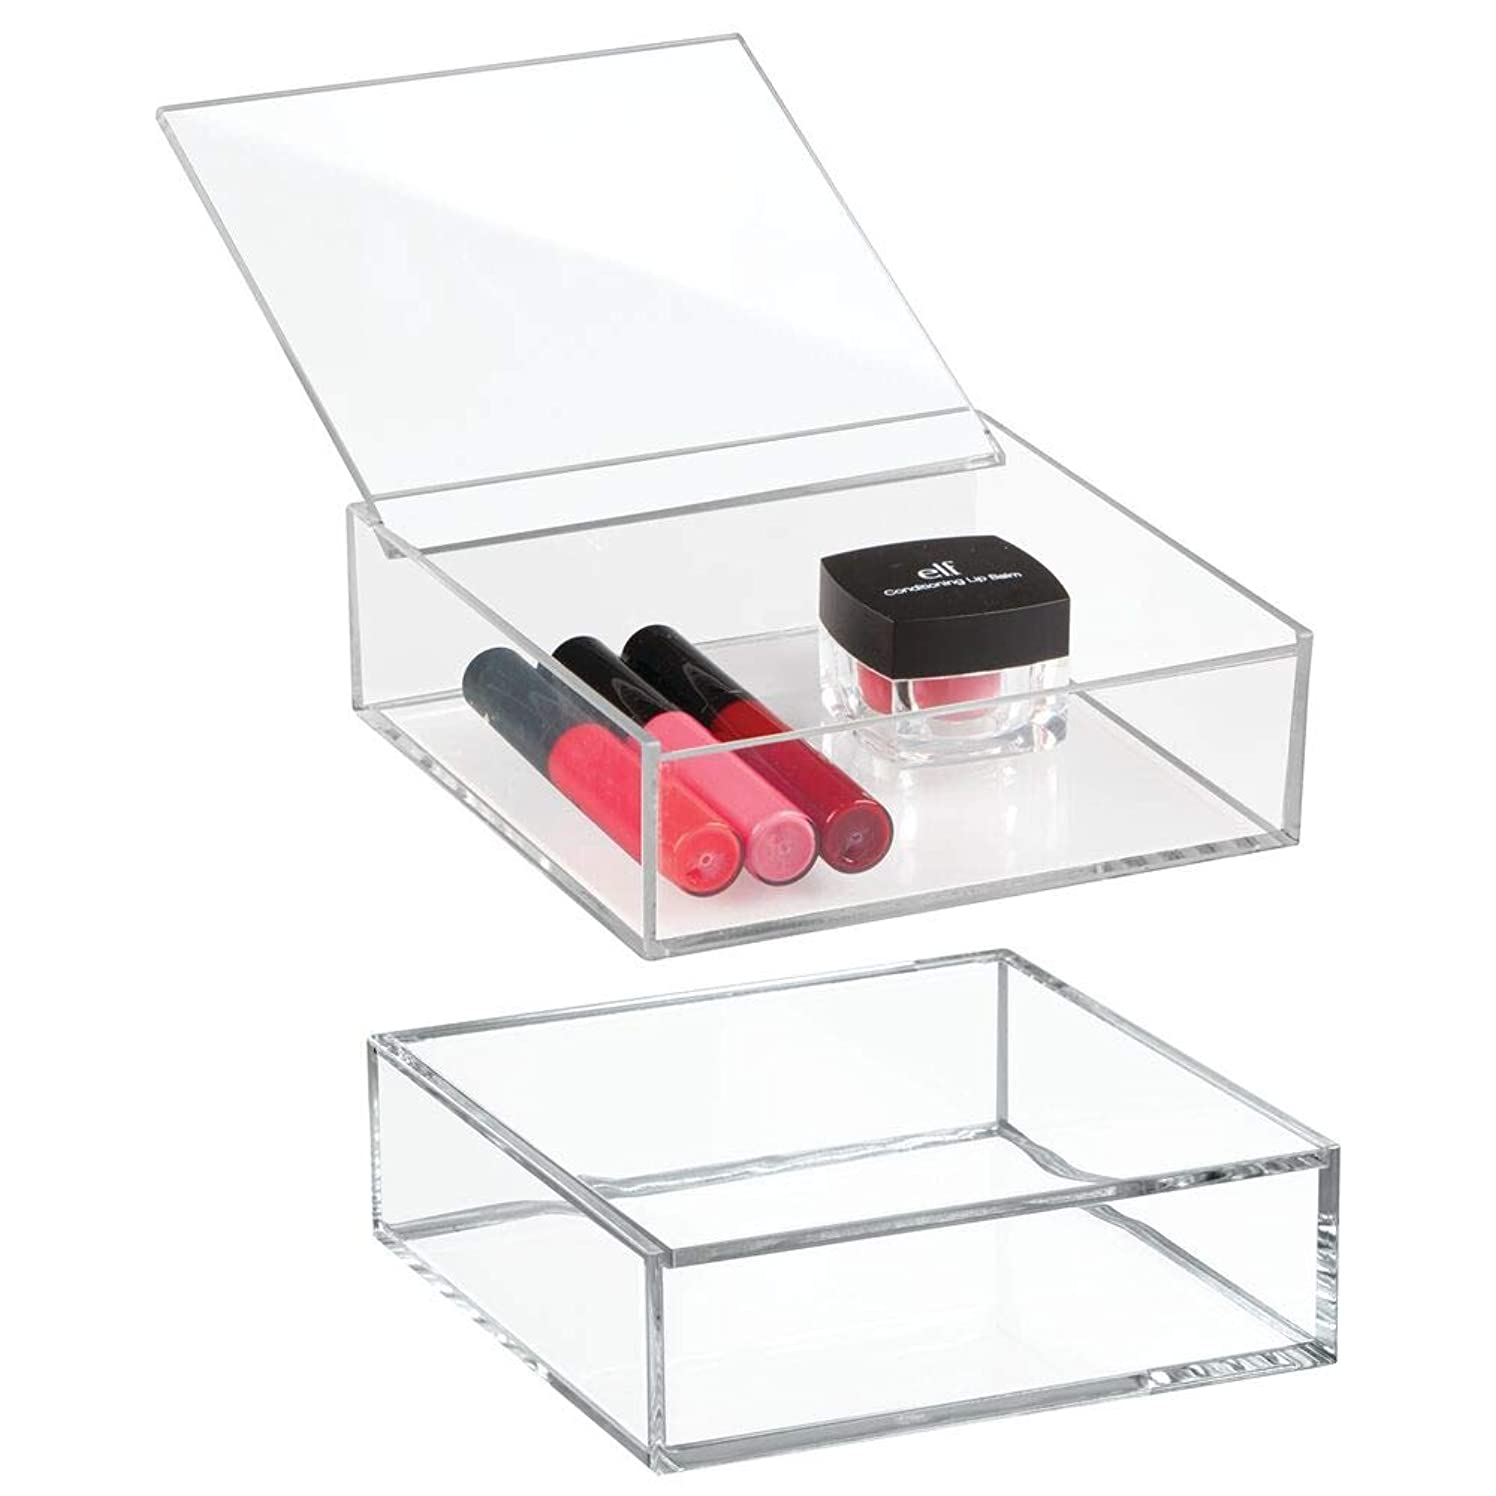 mDesign Small Mini Plastic Bathroom Drawer Vanity Organizer Boxes with Lids for Makeup Lip Gloss, Blush Jewelry - Set of 2, 6